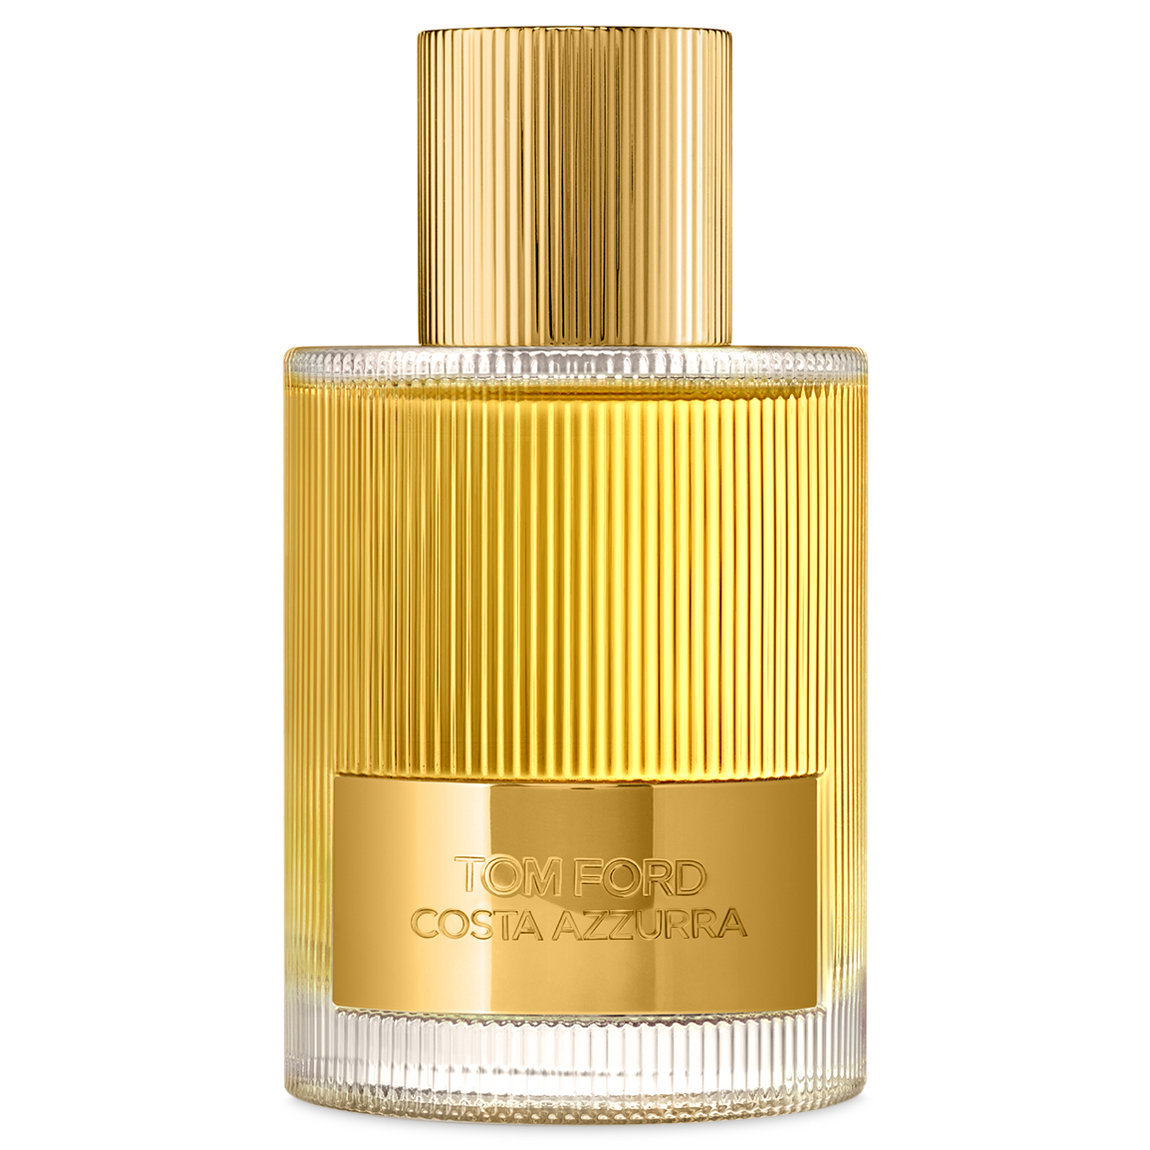 TOM FORD Costa Azzurra Eau de Parfum 100 ml alternative view 1 - product swatch.